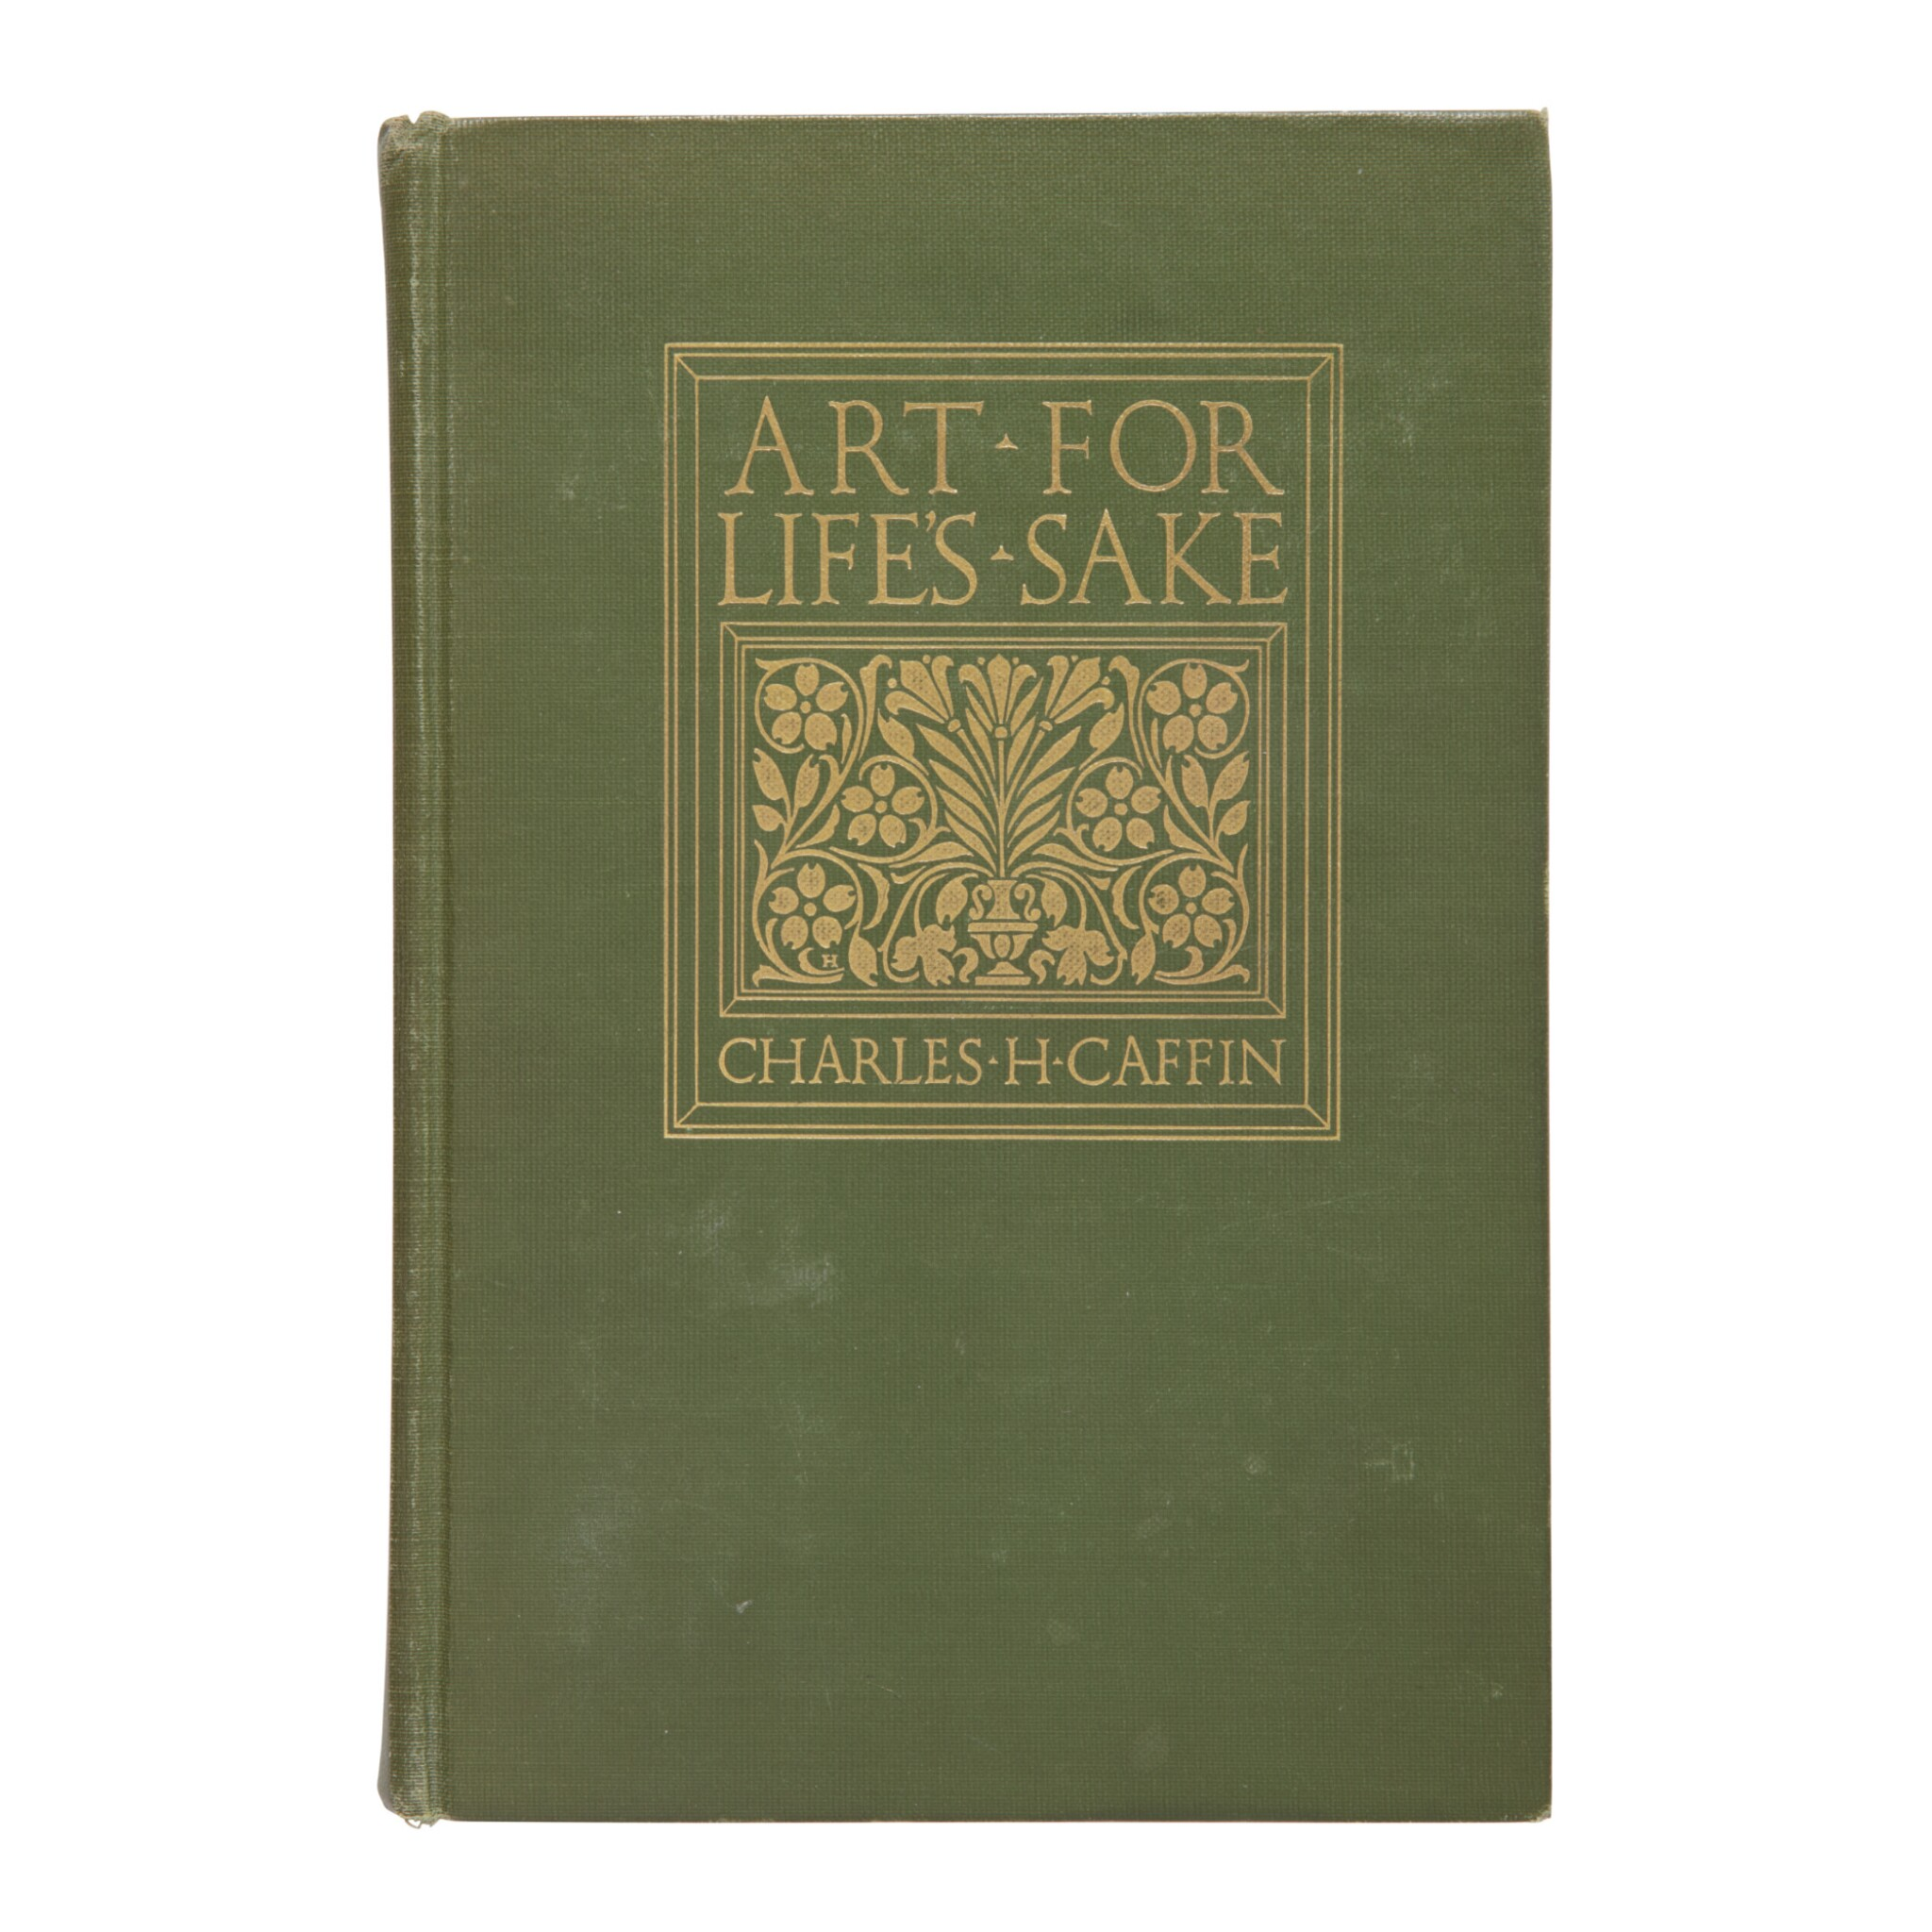 CHARLES H. CAFFIN | ART FOR LIFE'S SAKE. NEW YORK: (1913), GEORGIA O'KEEFFE'S COPY